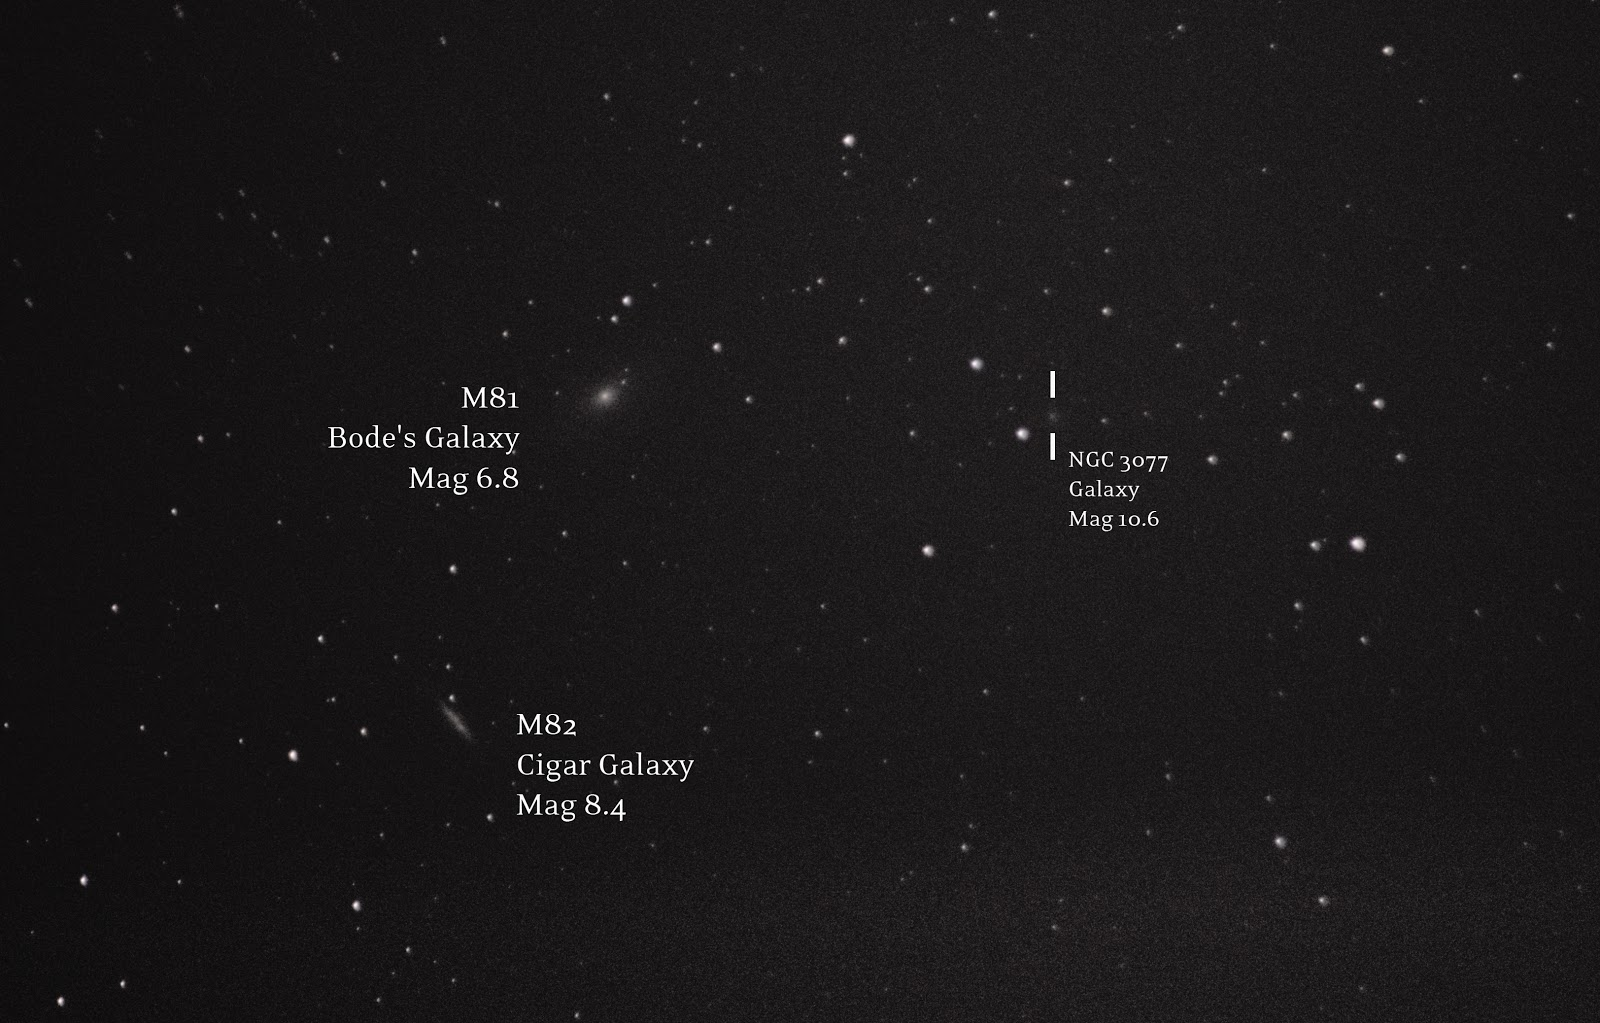 M82 M81 galaxies with DSLR